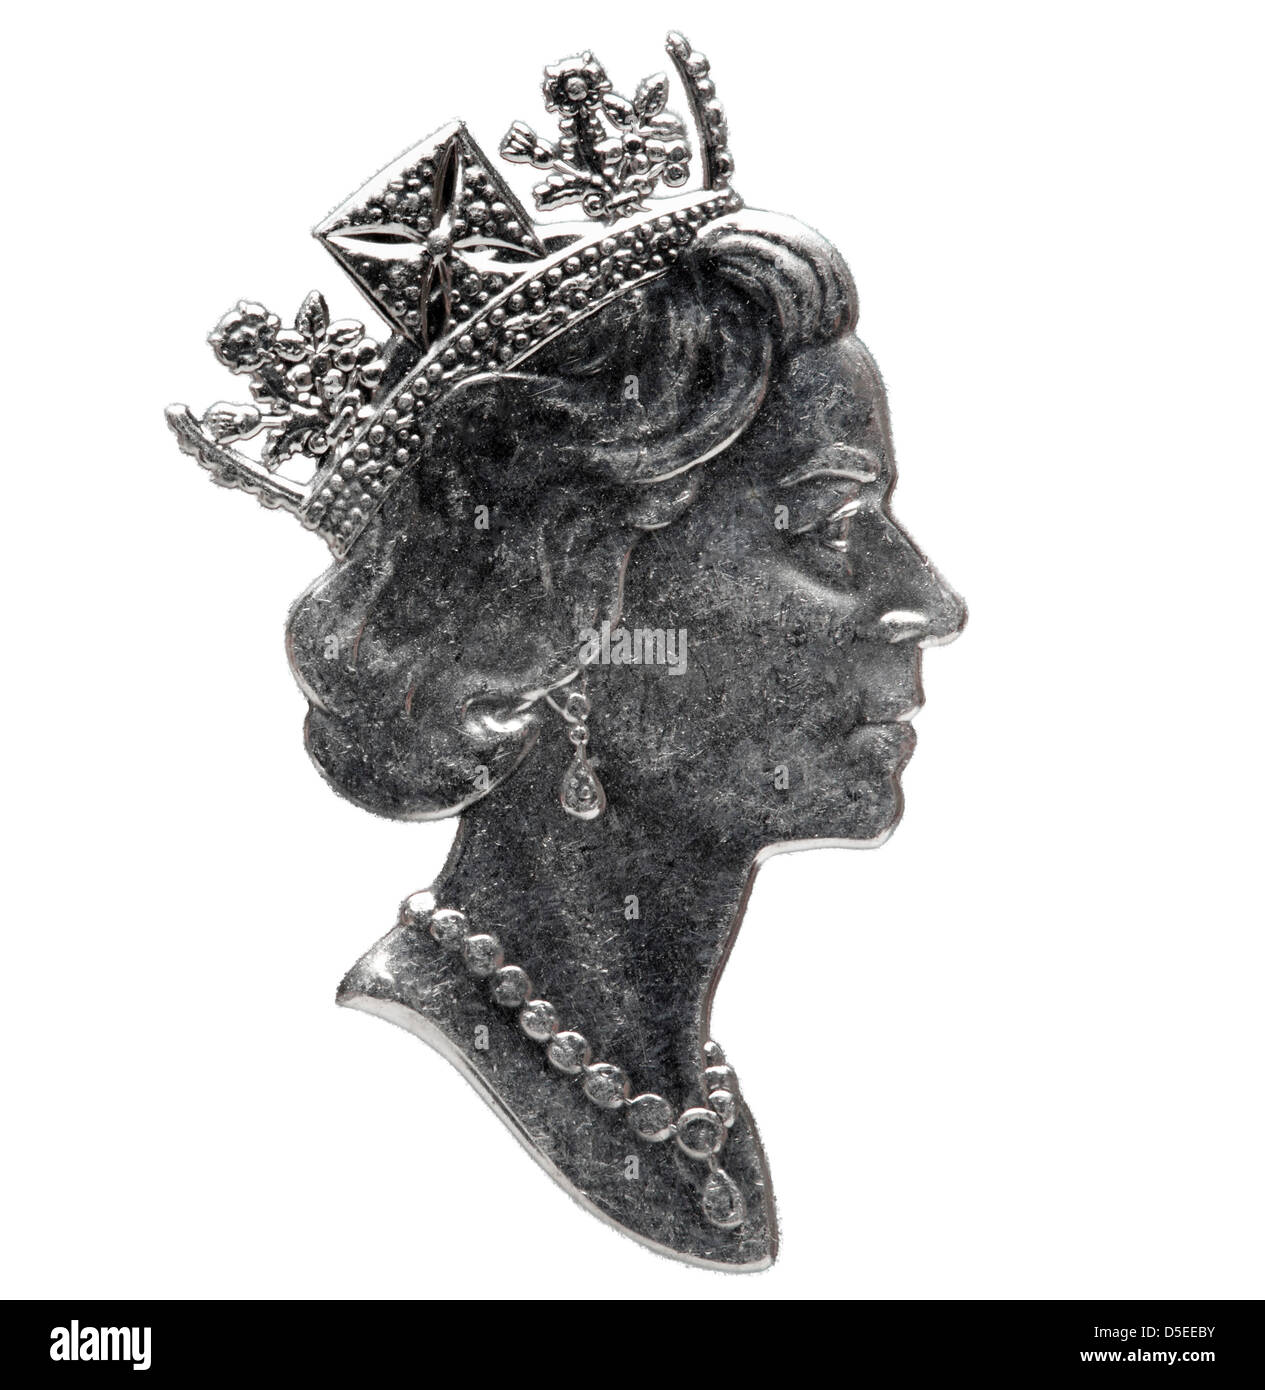 Portrait of Queen Elizabeth II from 50 cents coin, Canada, 1995, on white background - Stock Image